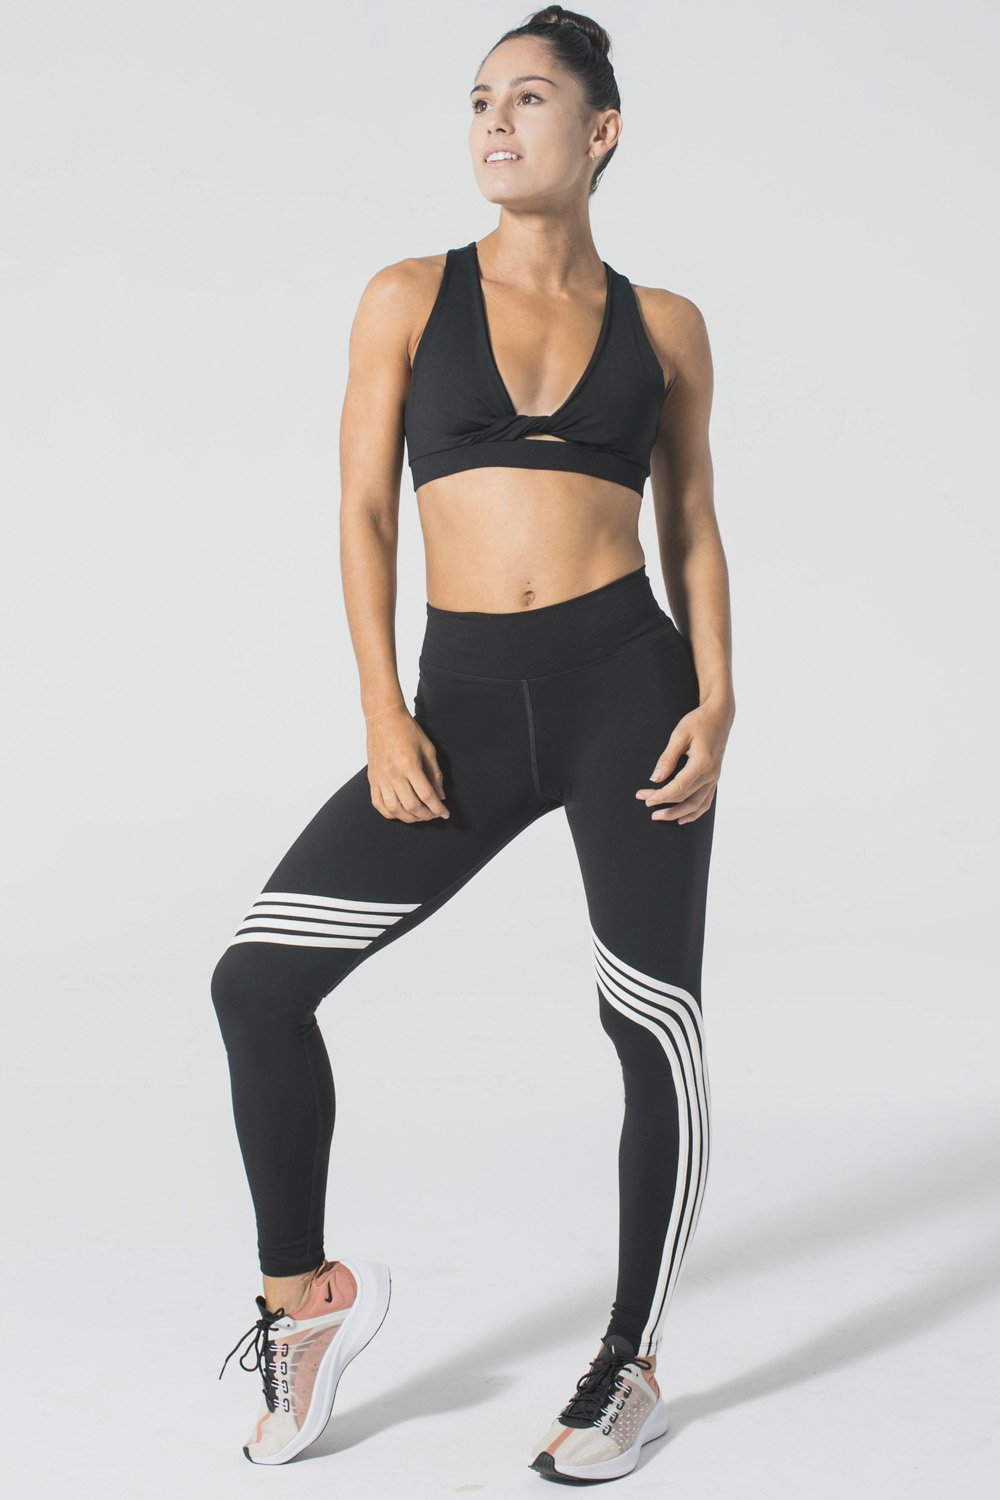 925Fit Gym and Tone It Legging, You can Look Great with 925Fit at Butterflies and Bikinis